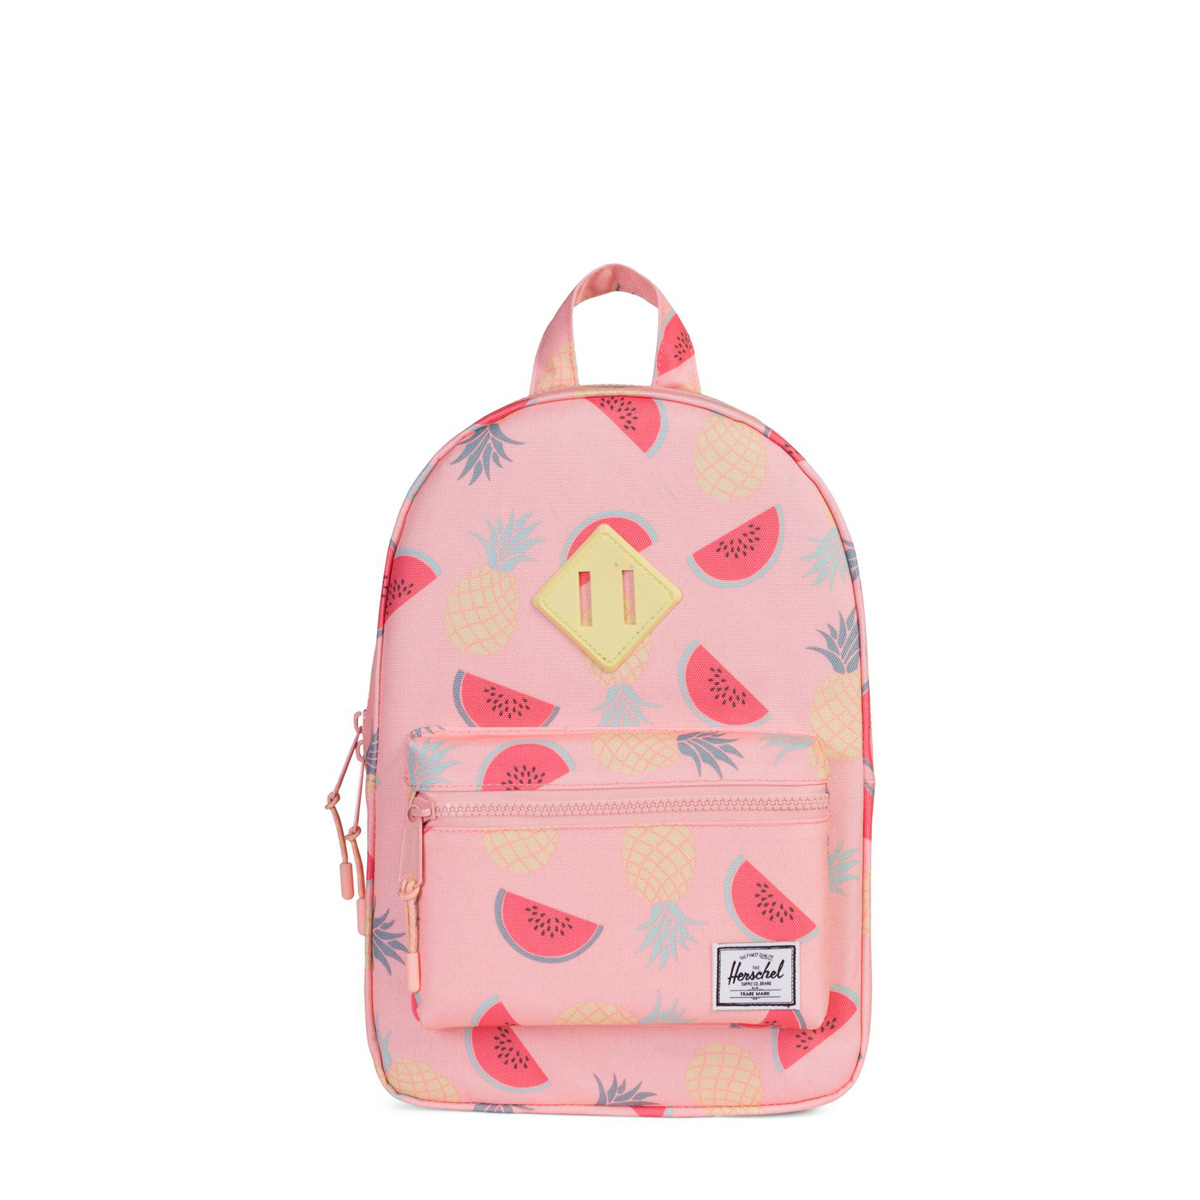 390bae983301 Canada is now most up-and-coming bag brand HERSCHEL by from Vancouver. The  finish which is outstandingly stylish D Tyr who included urbane